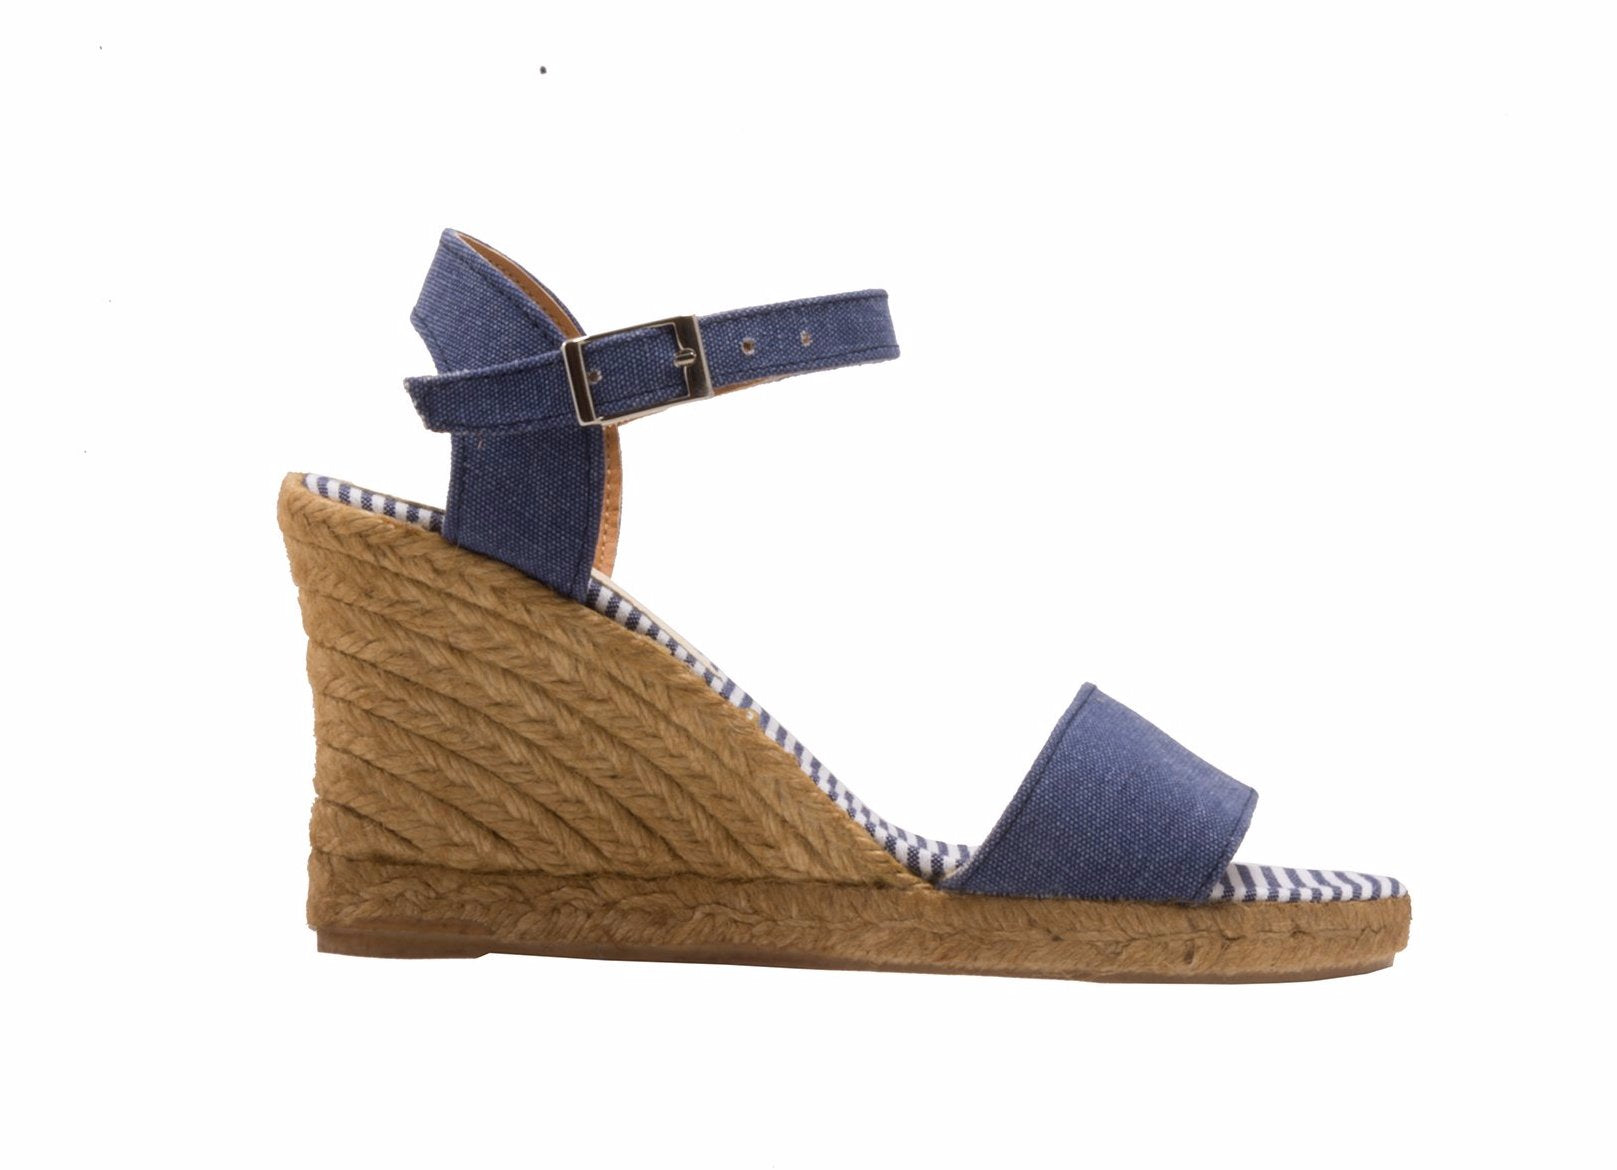 Cote and Badt Motril espadrilles Singapore